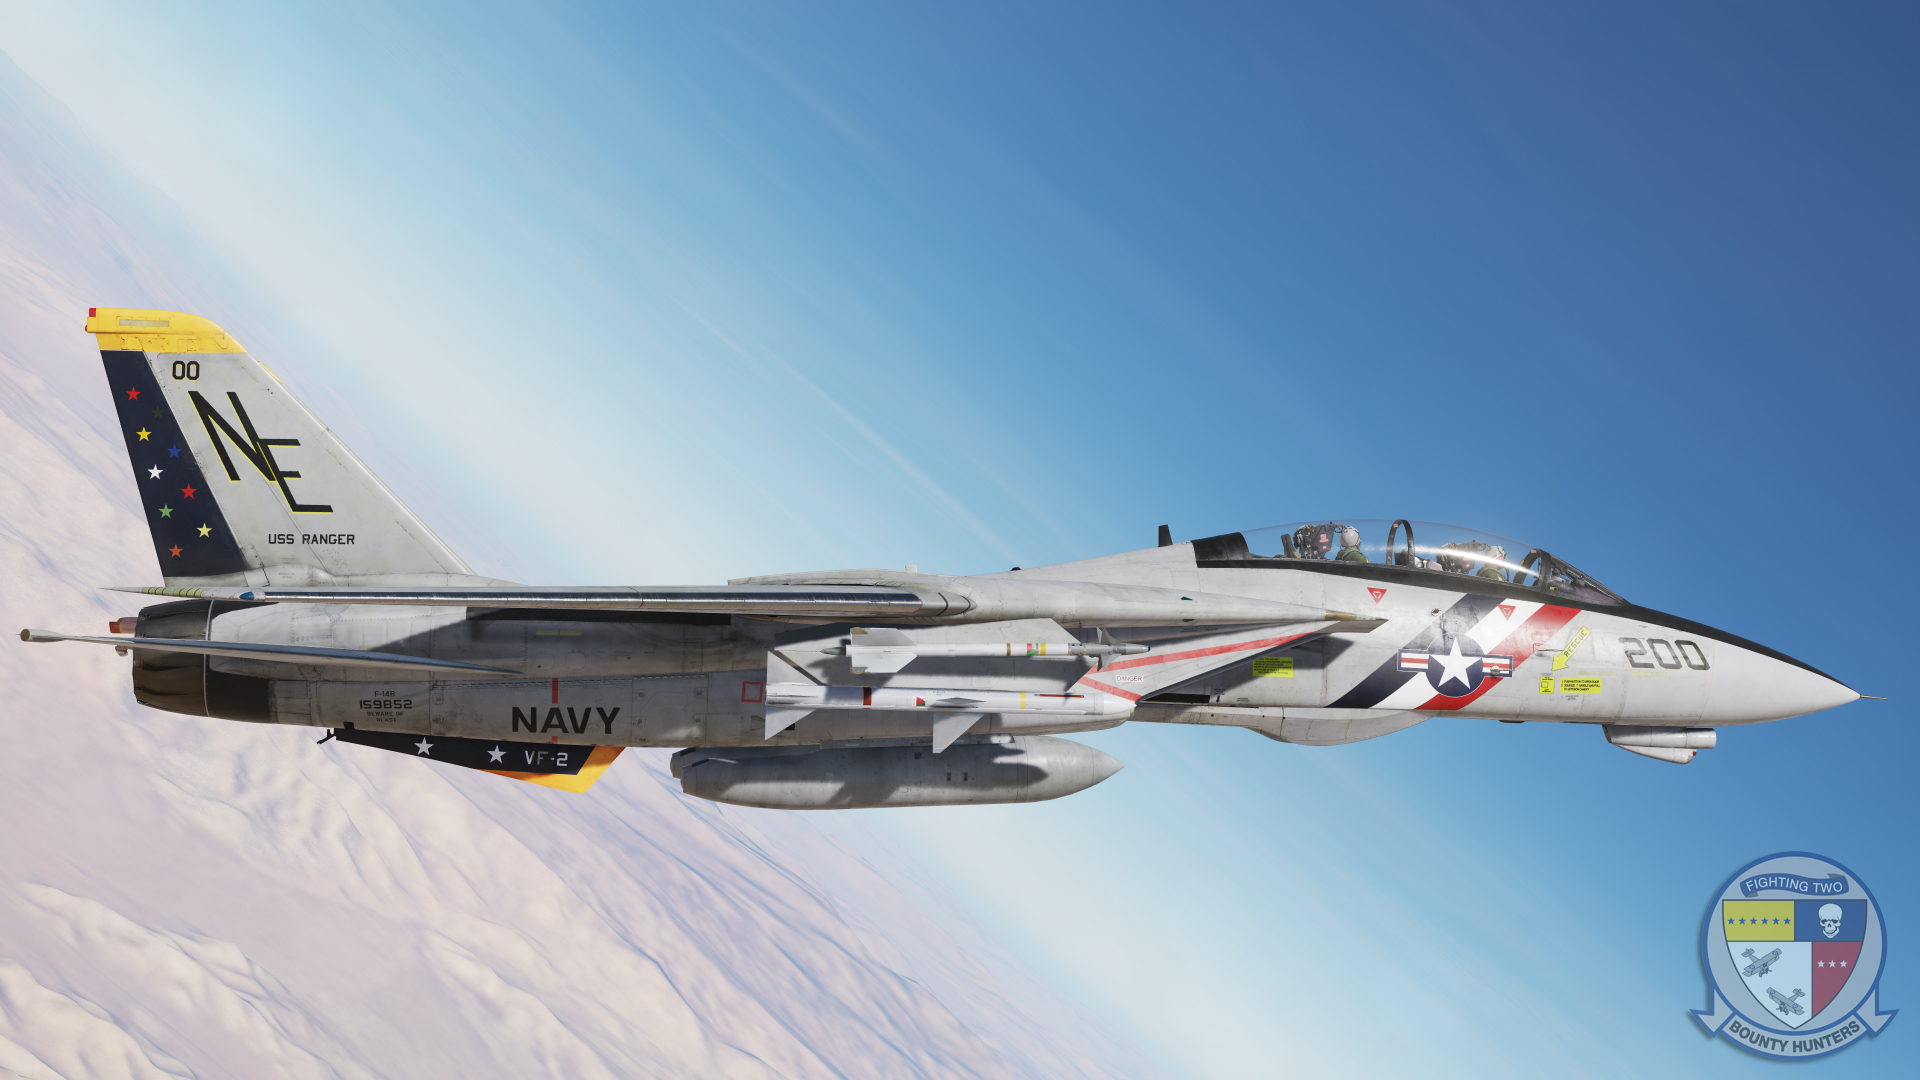 VF-2 Bounty Hunters CAG Colored Stars